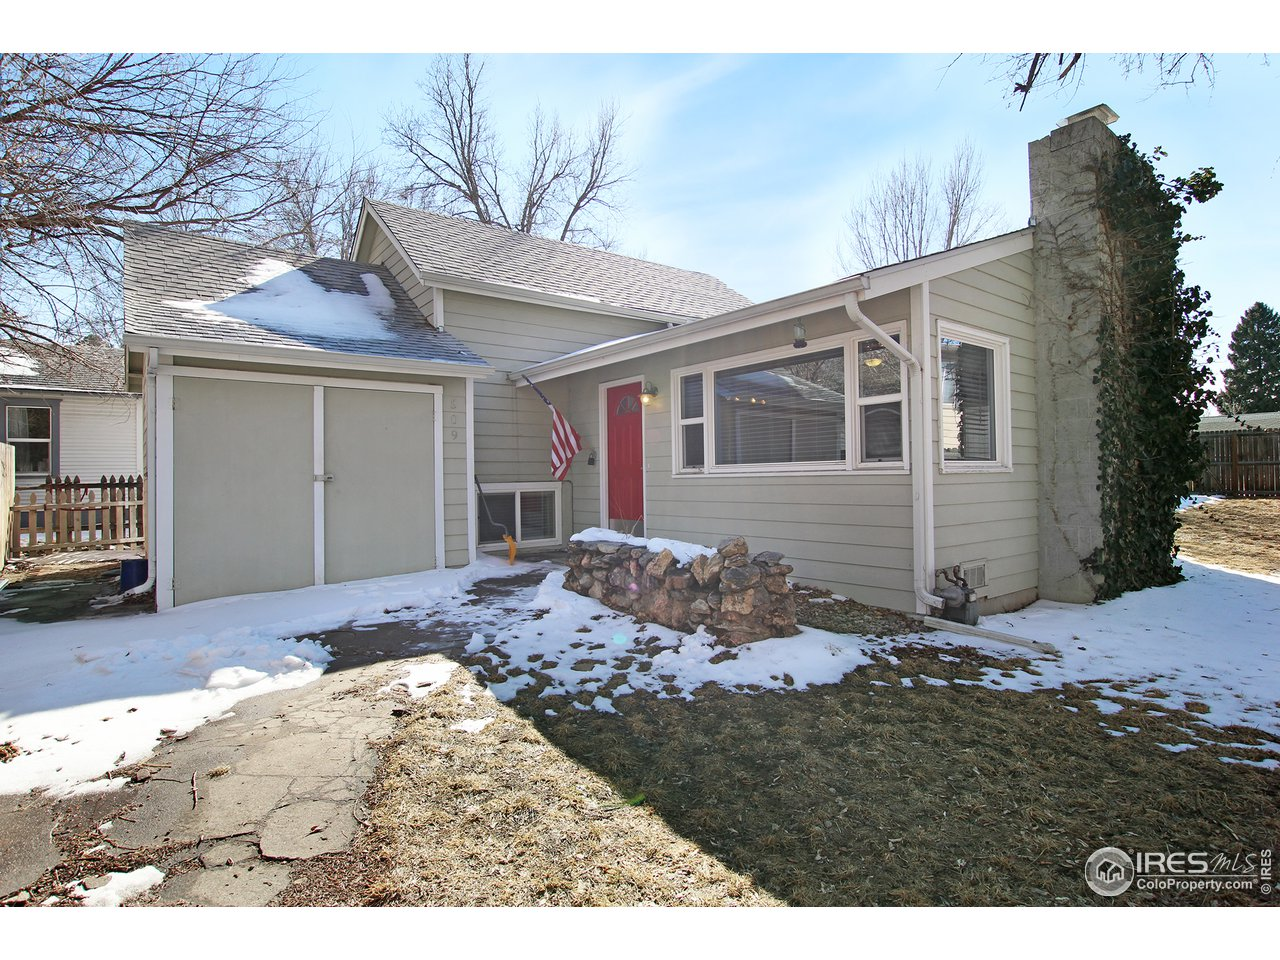 509 Laporte Ave, Fort Collins CO 80521